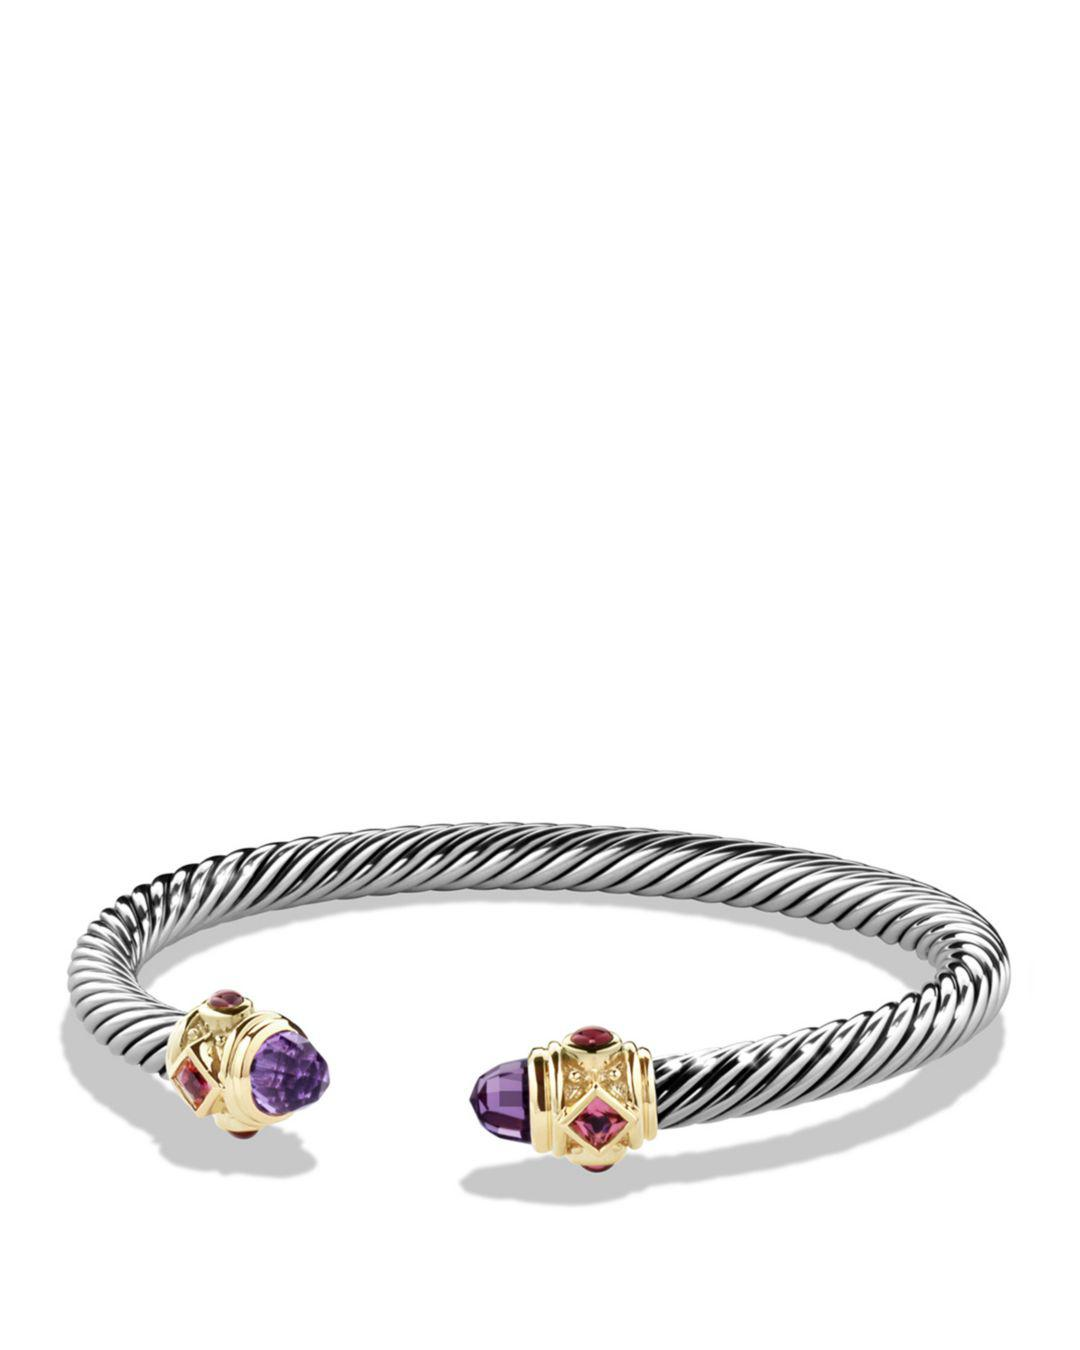 David Yurman Women S Metallic Renaissance Bracelet With Amethyst